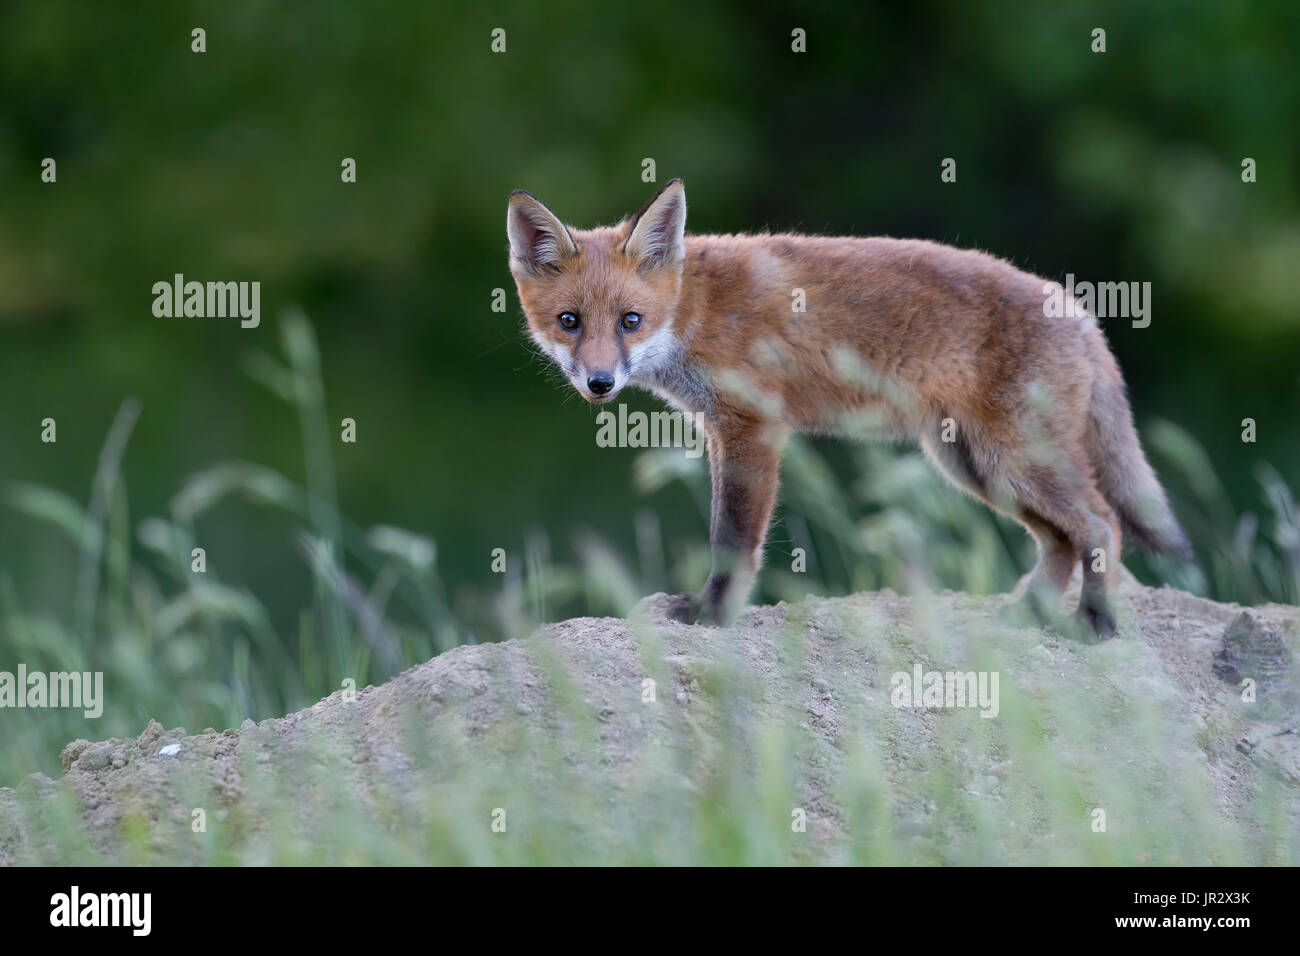 Cub Red Fox standing in a meadow at spring - GB Stock Photo